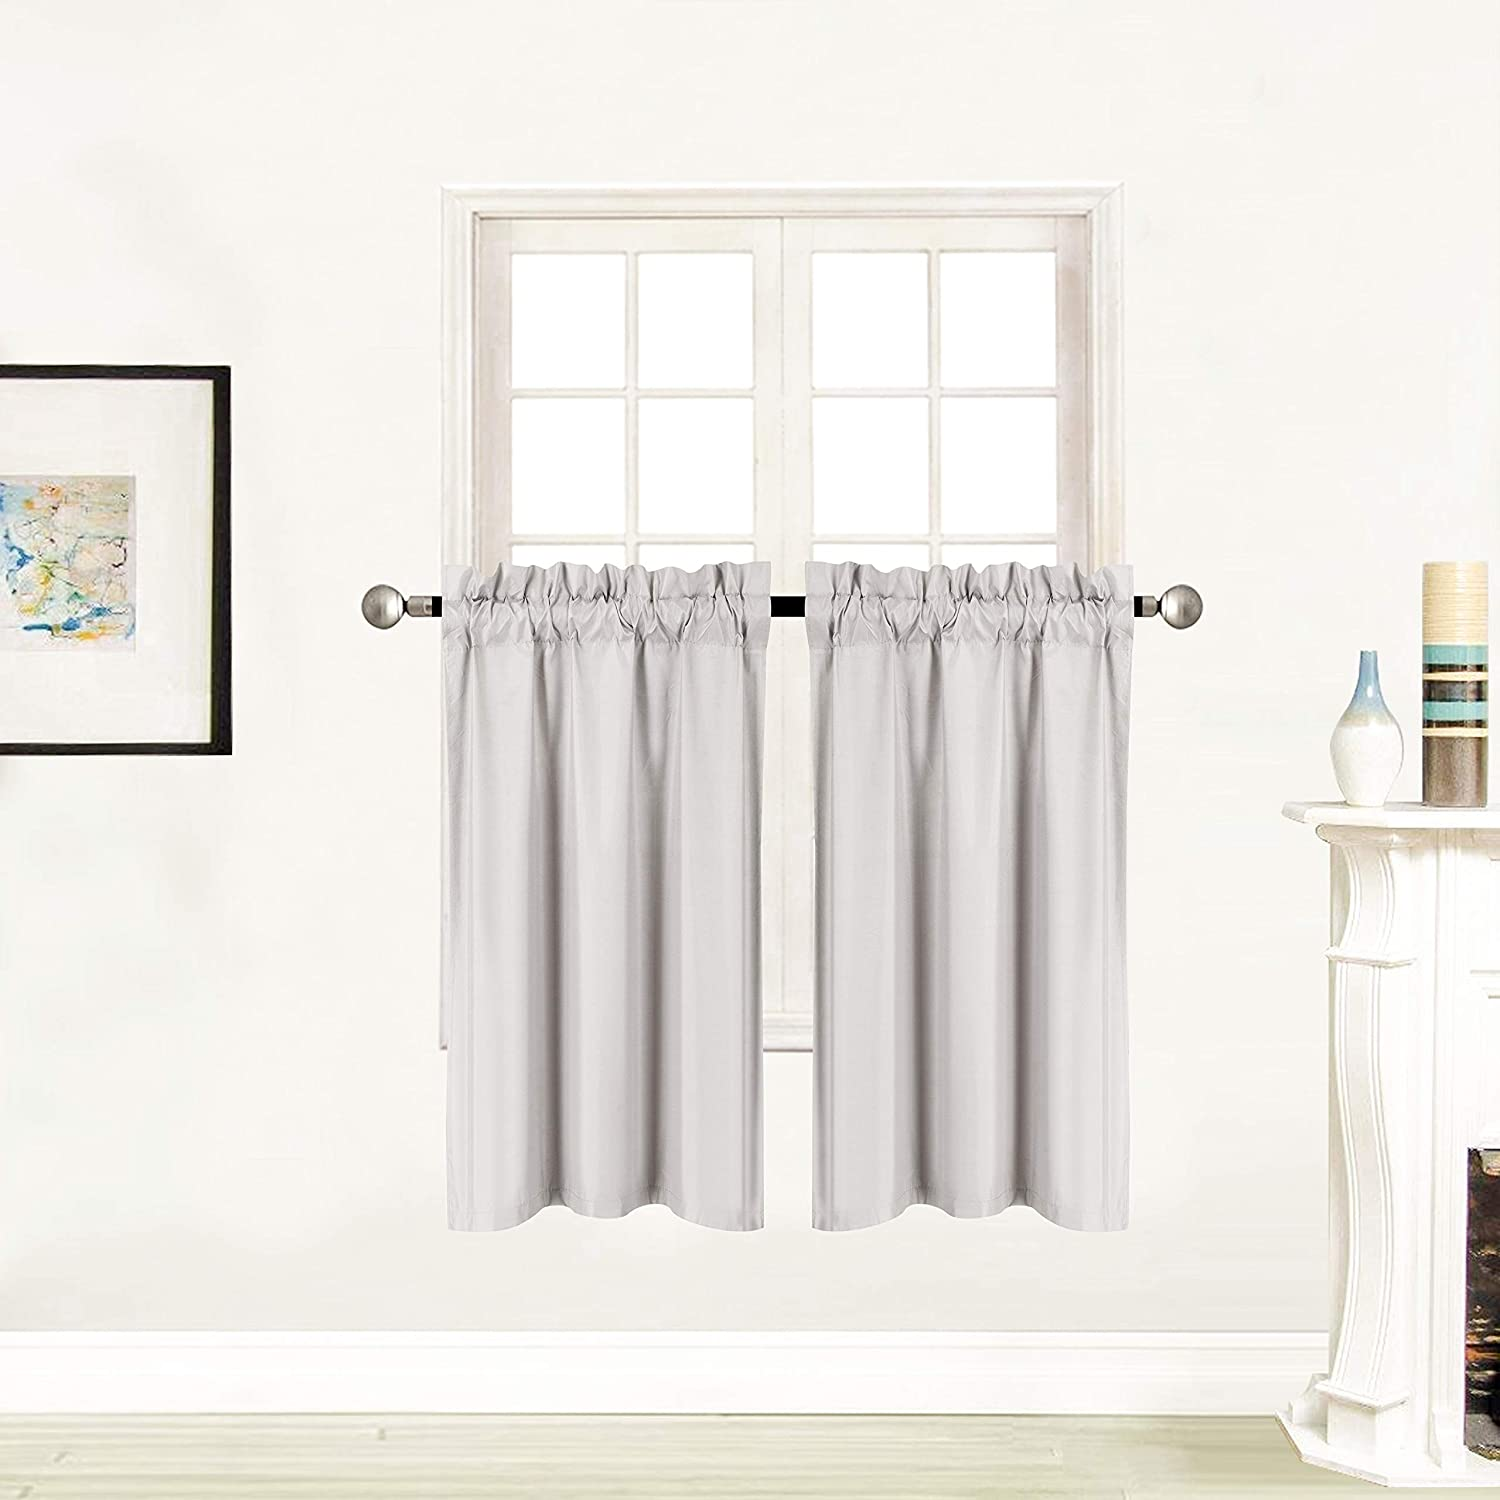 """Better Home Style 100% Blackout 2 Panels Tiers Window Treatment CurtainInsulated Drapes Short Panels for Kitchen Bathroom or Any Small Window M3036 (Light Grey/Silver, 2 Panels 28"""" W X 36"""" L Each)"""